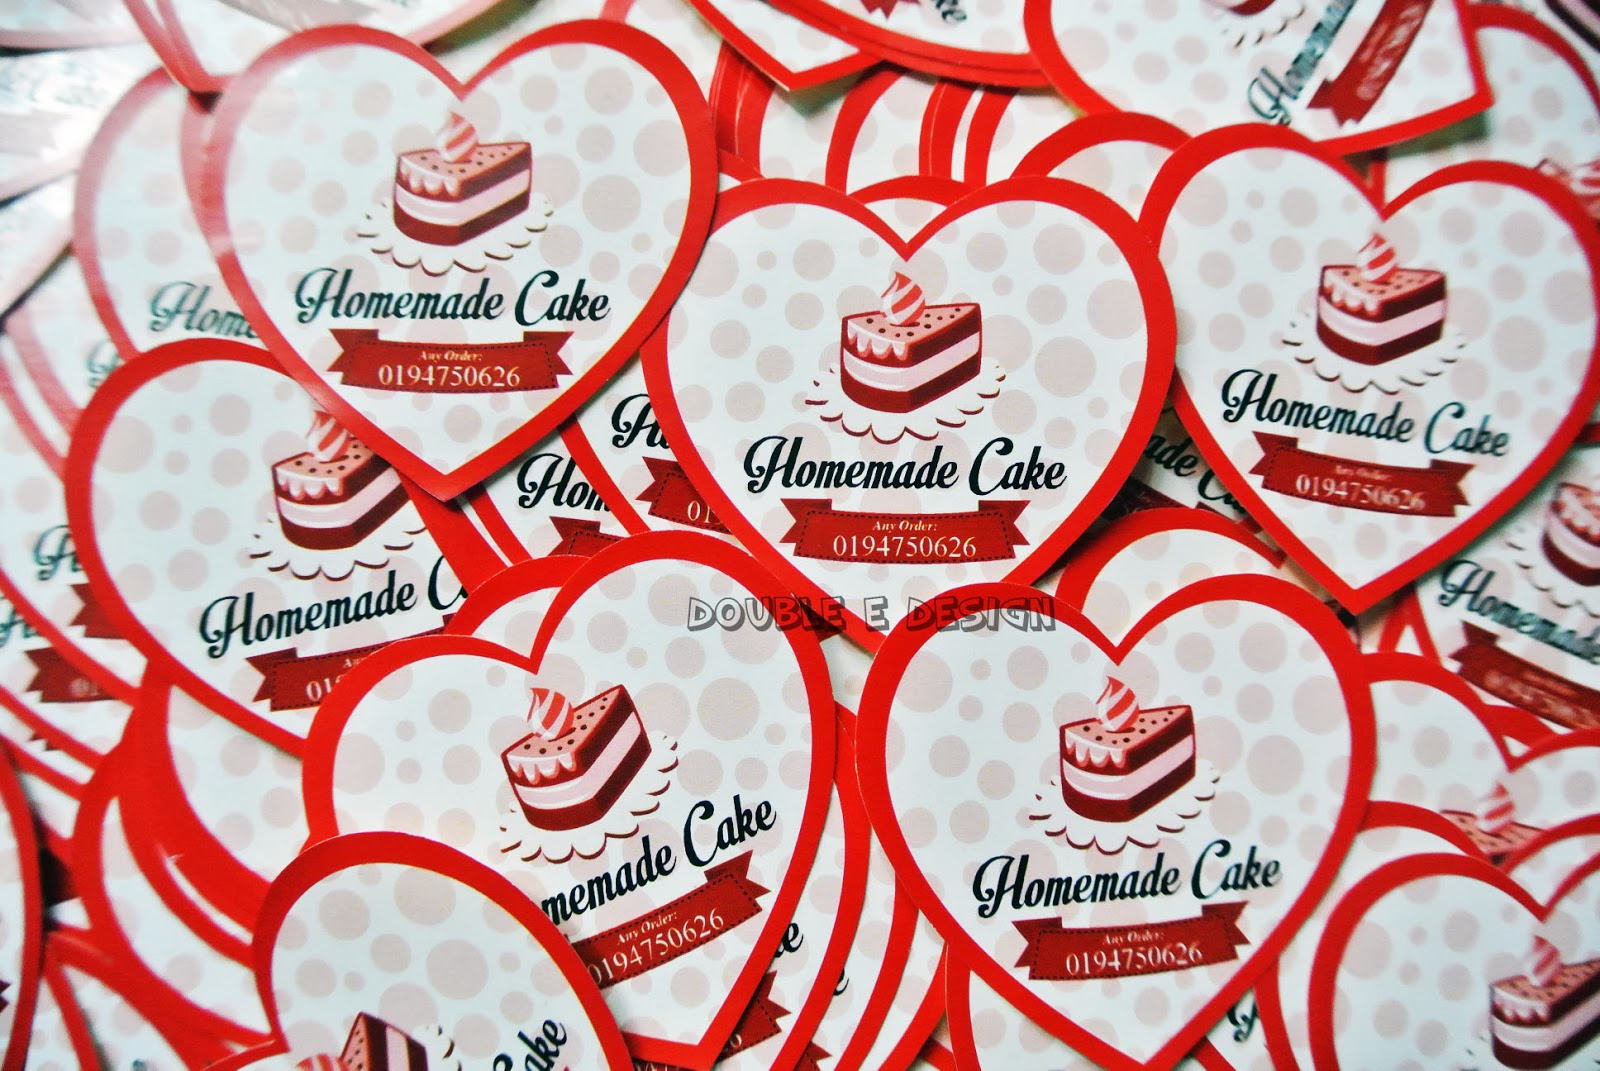 Double Ed Homemade Cake Sticker Labels 100pcs